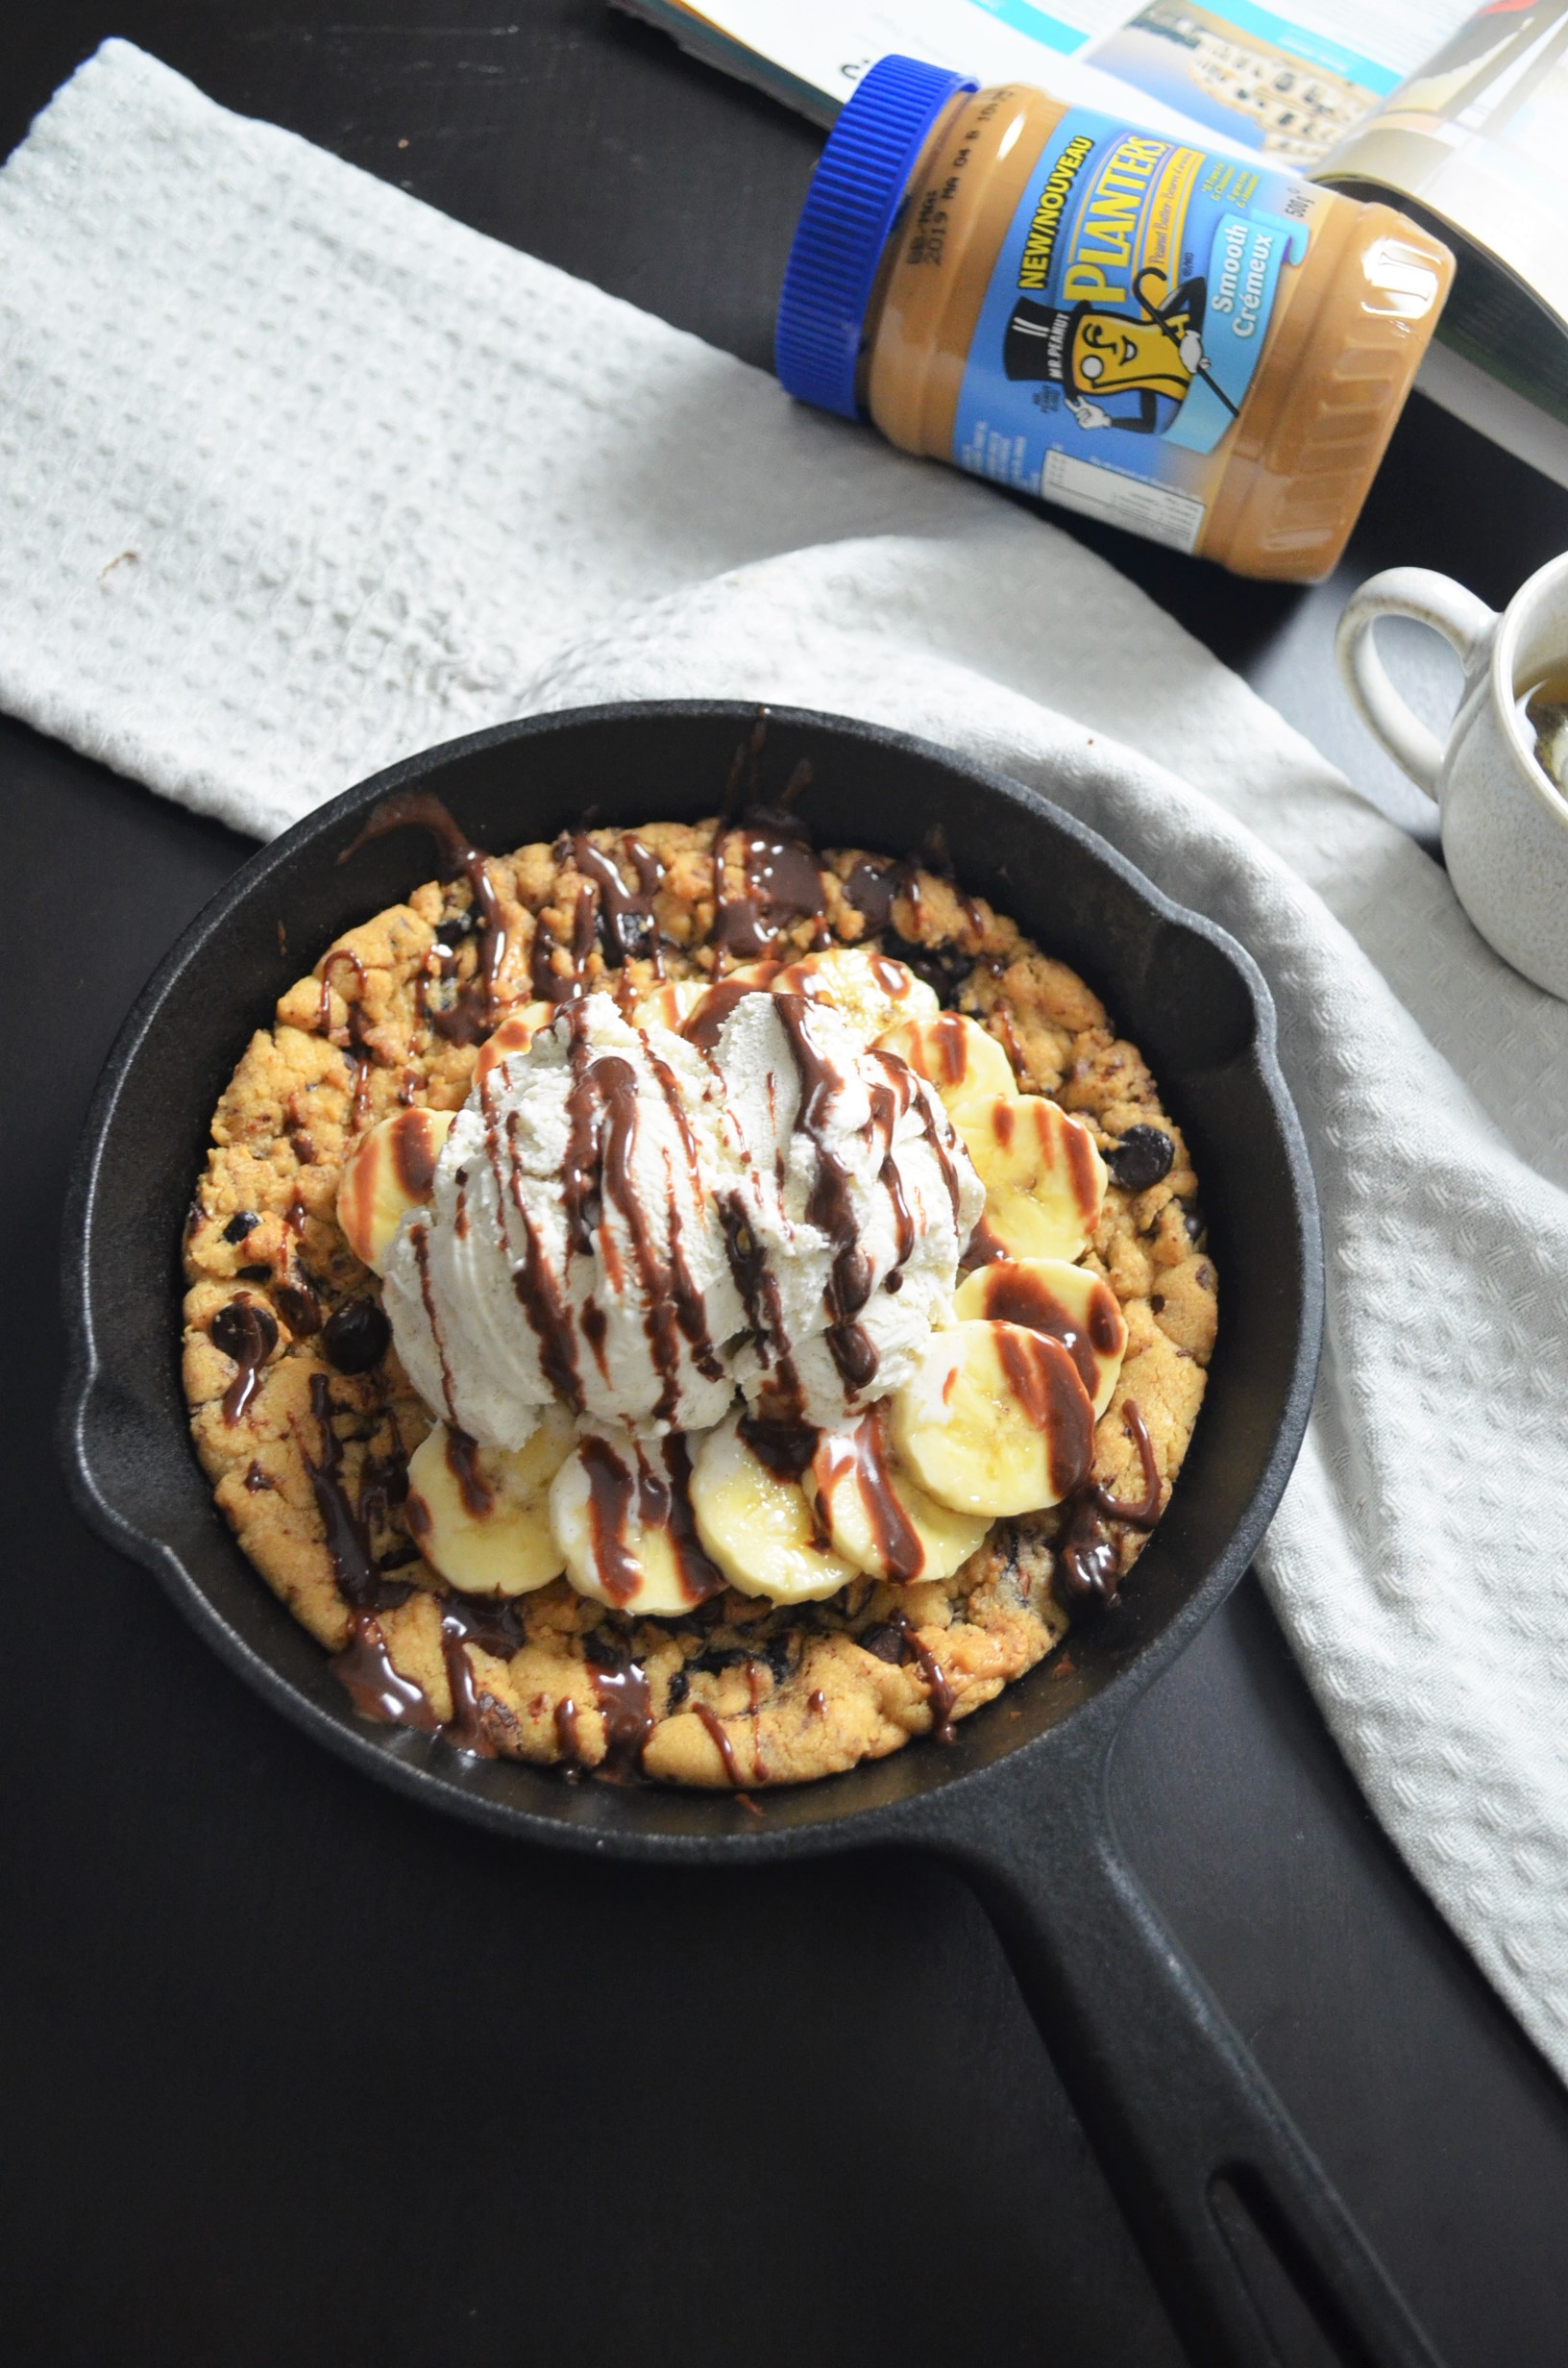 Skillet Peanut Butter Chocolate Chip Cookie